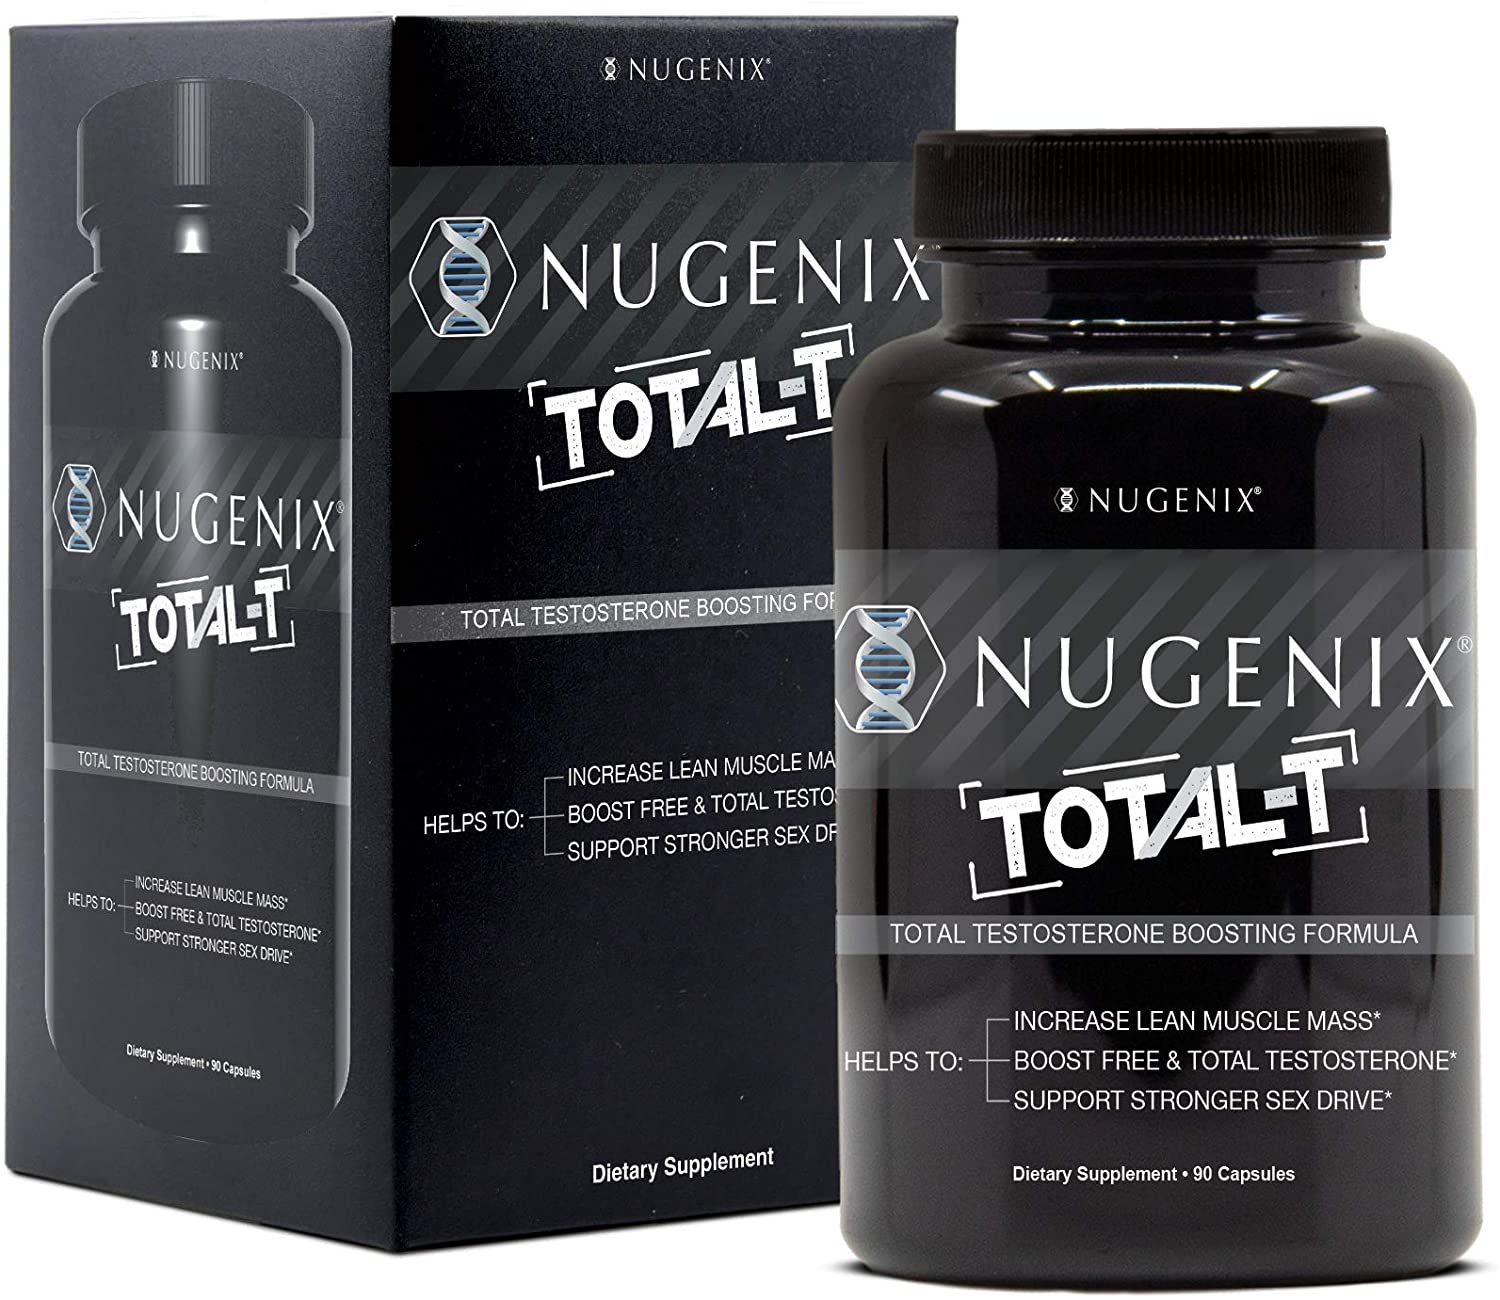 nugenix reviews, nugenix total t reviews, nugenix total t review, nugenix total t ingredients